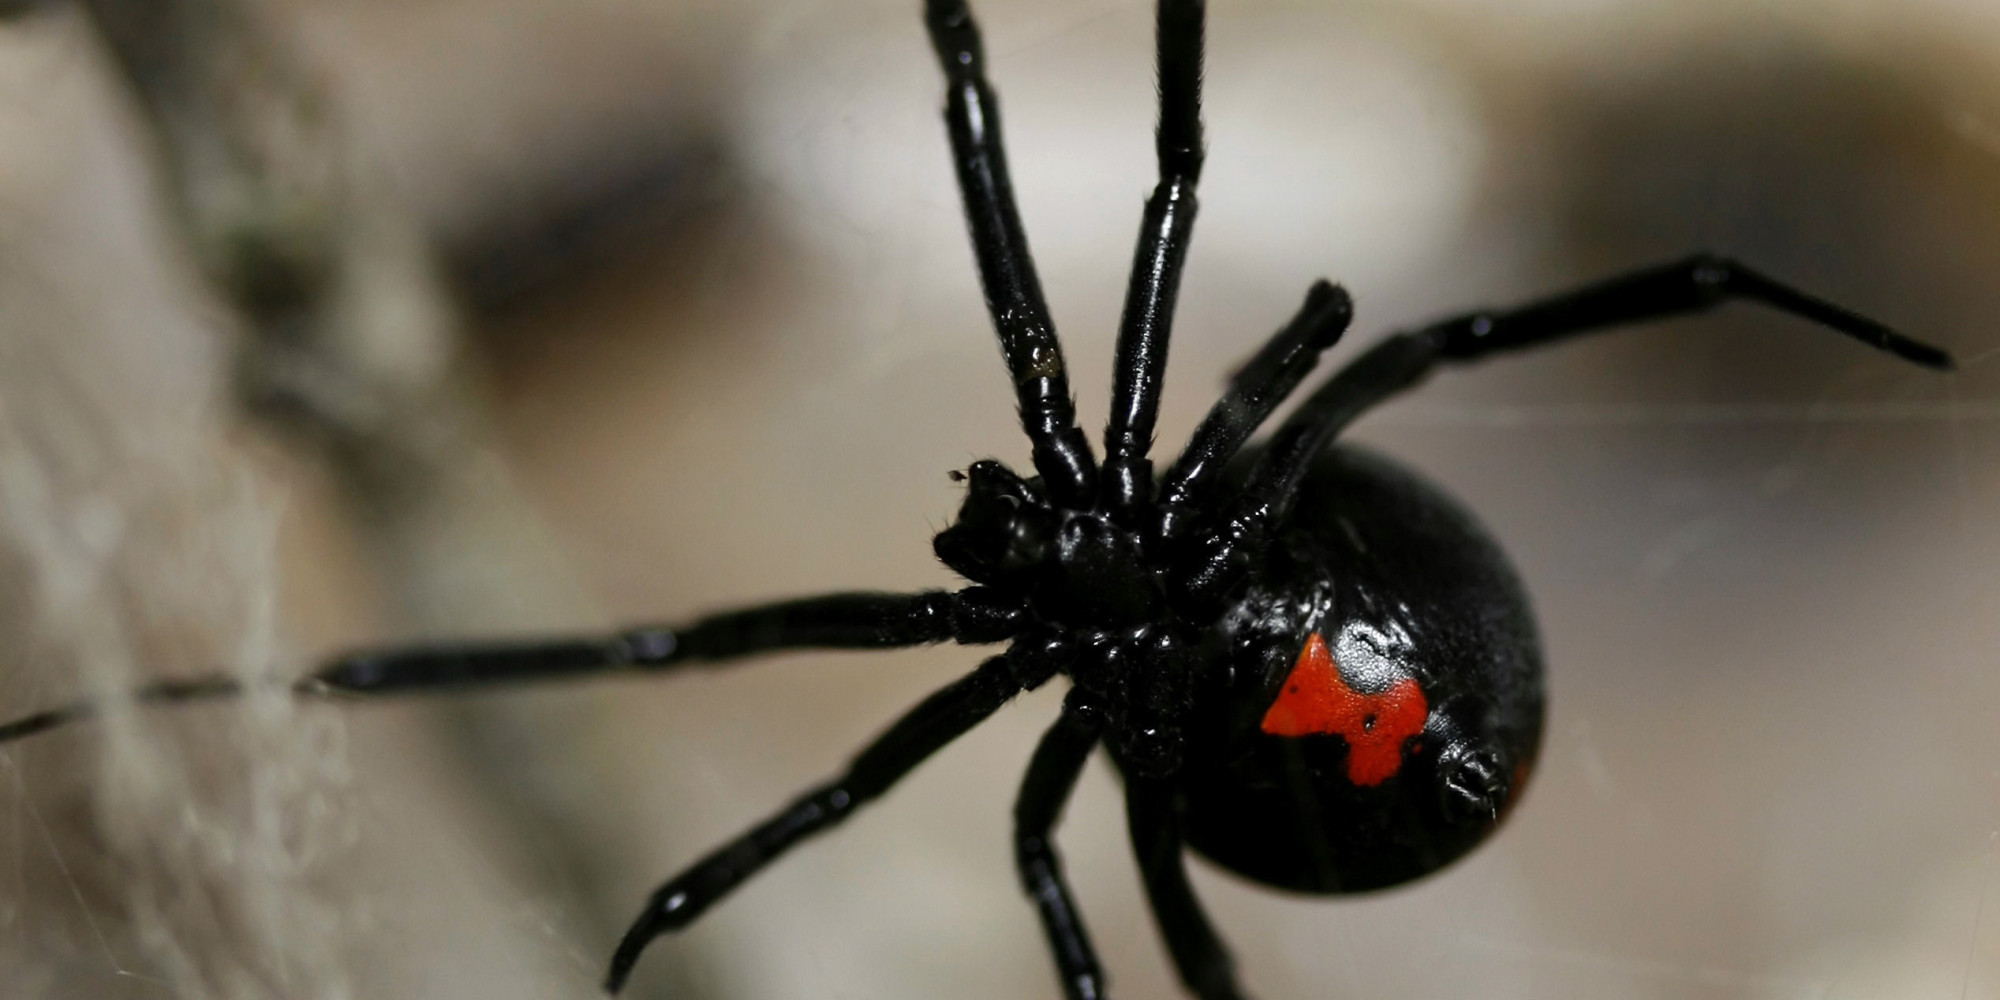 Black Widows Found On Grapes At Supermarkets In Several States